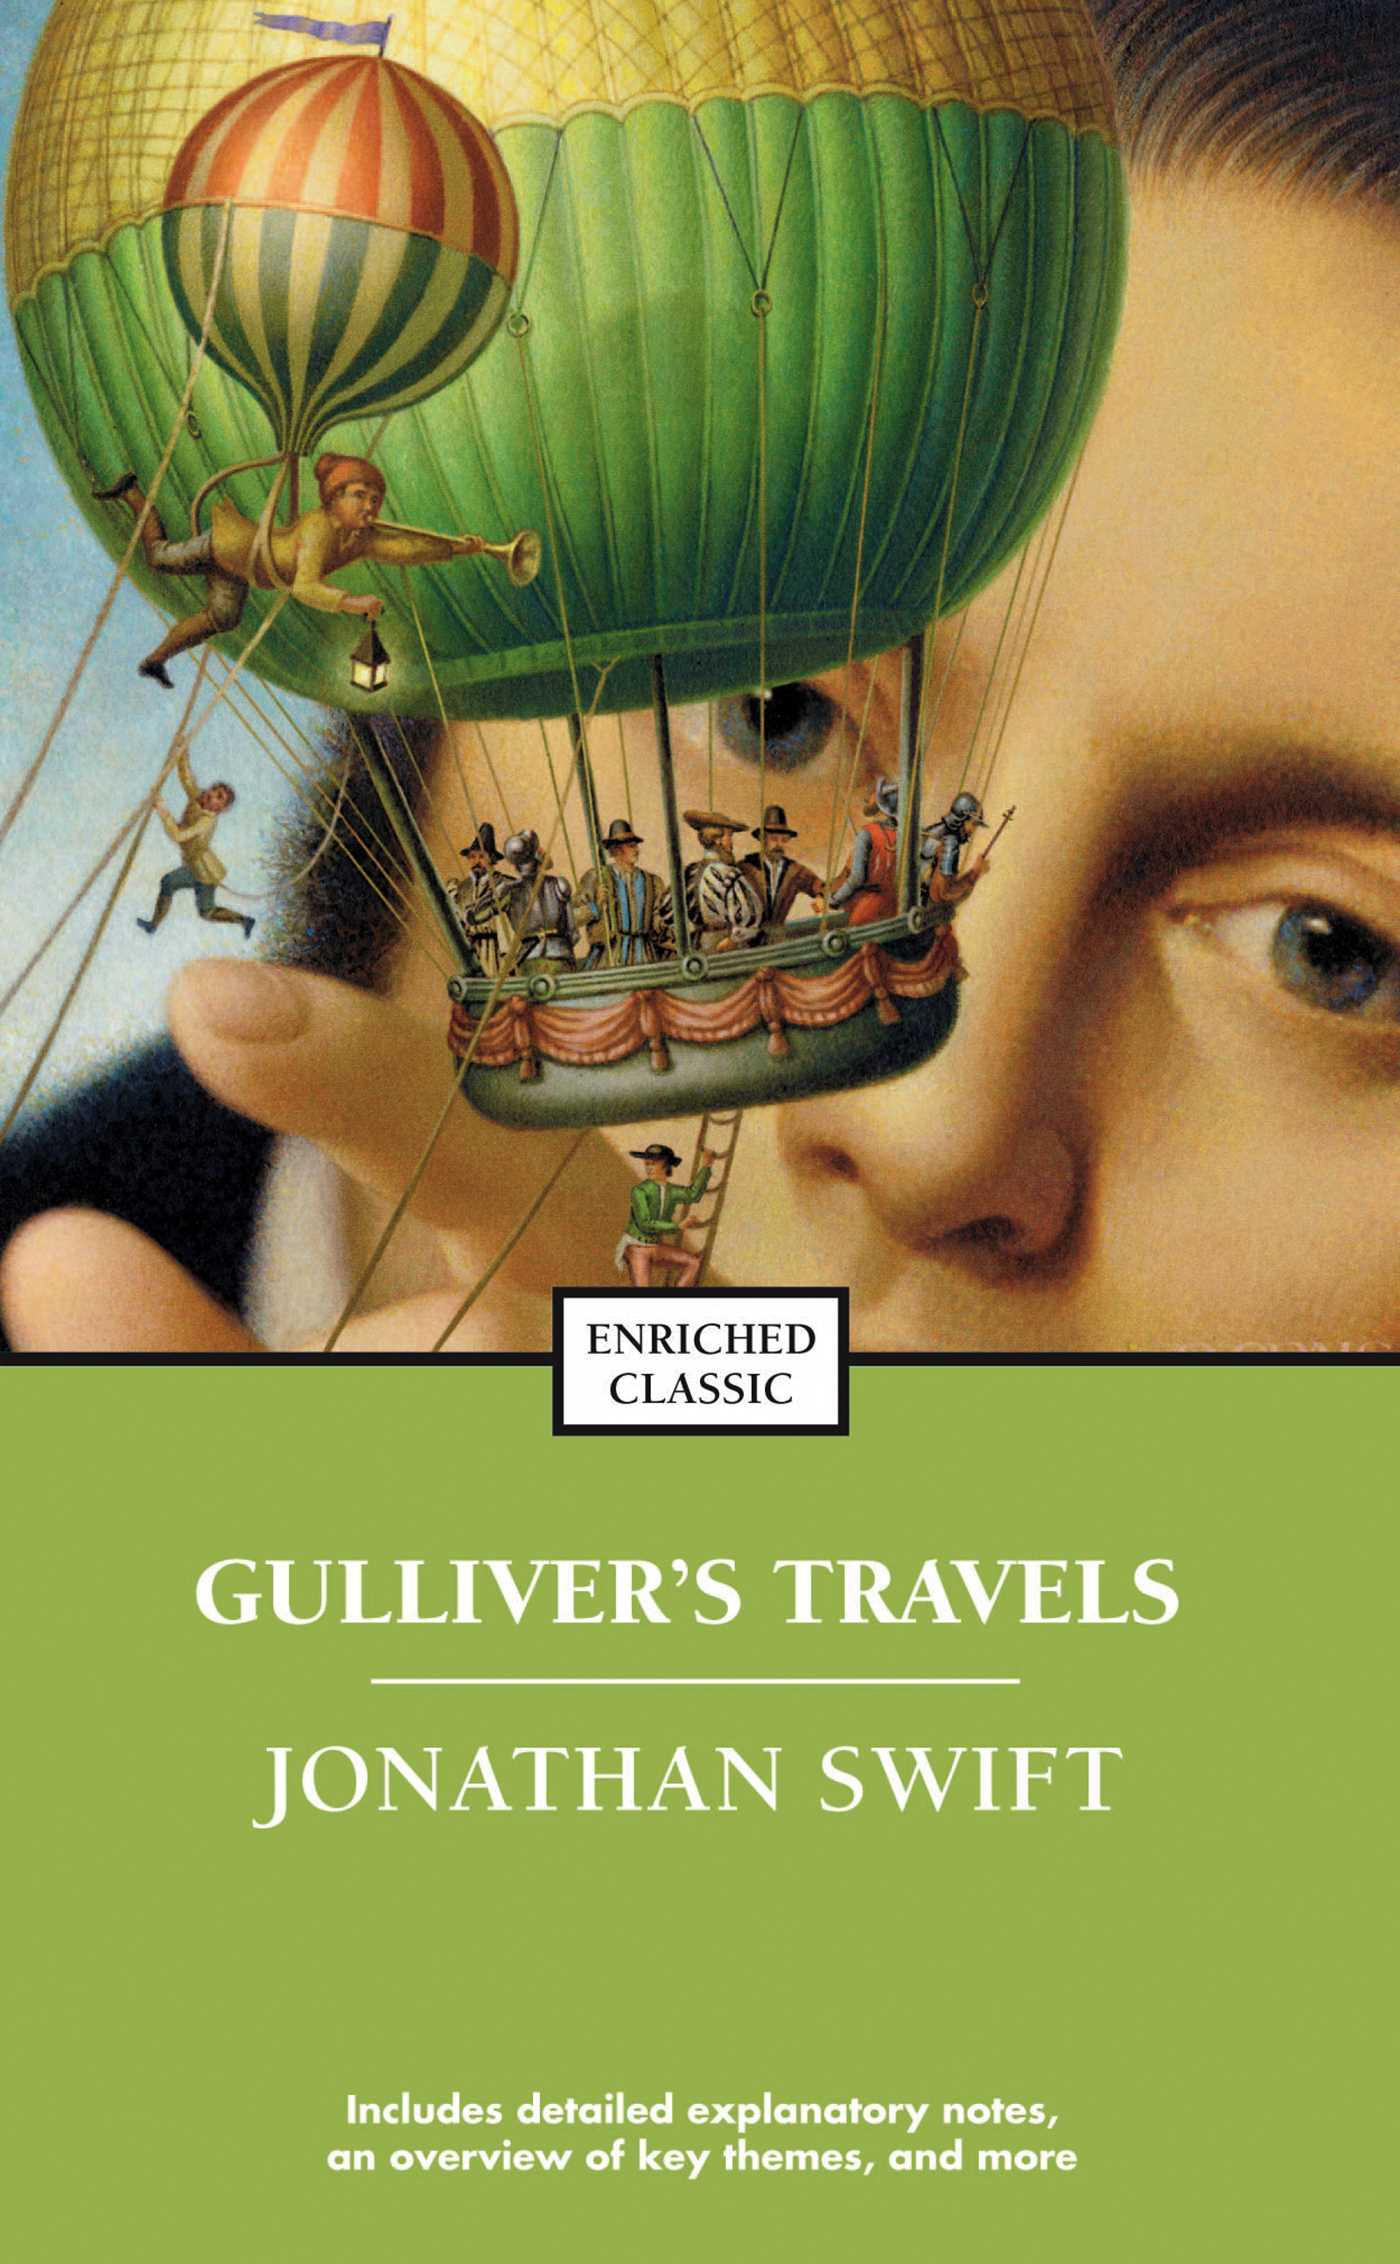 an analysis of jonathan swifts gulliver travel Category: gulliver's travels essays title: an analysis of gulliver's analysis, jonathan affairs of the lilliputians the lilliputians to gain a high.